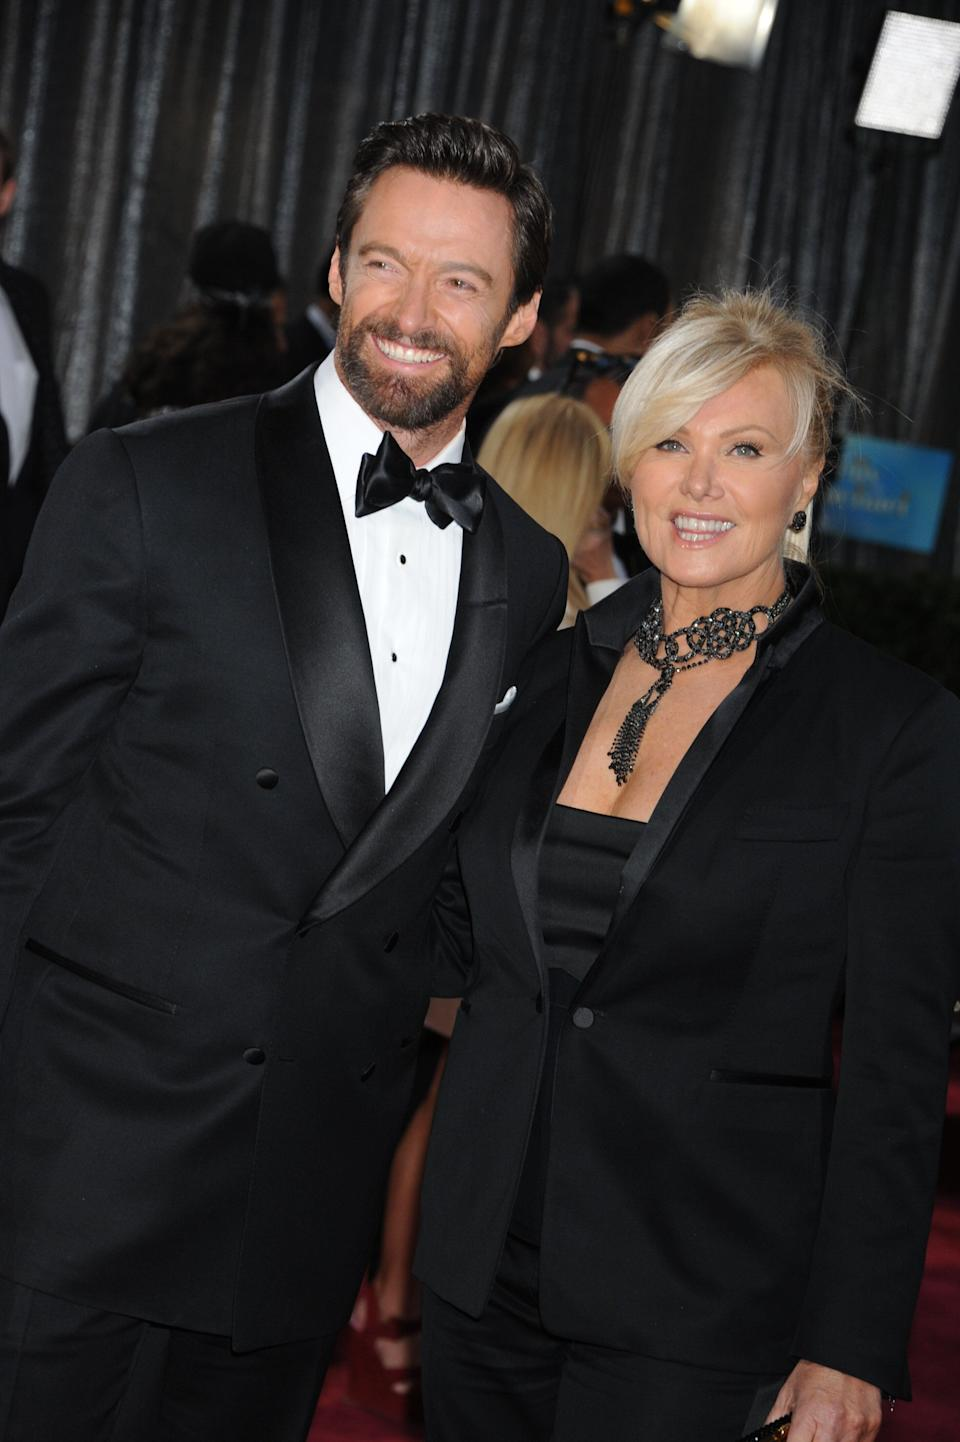 Actor Hugh Jackman and wife Deborah Lee Furness on the red carpet at the 85th Academy Awards (Oscars) held at the Dolby Theater in Hollywood. (Photo by Frank Trapper/Corbis via Getty Images)